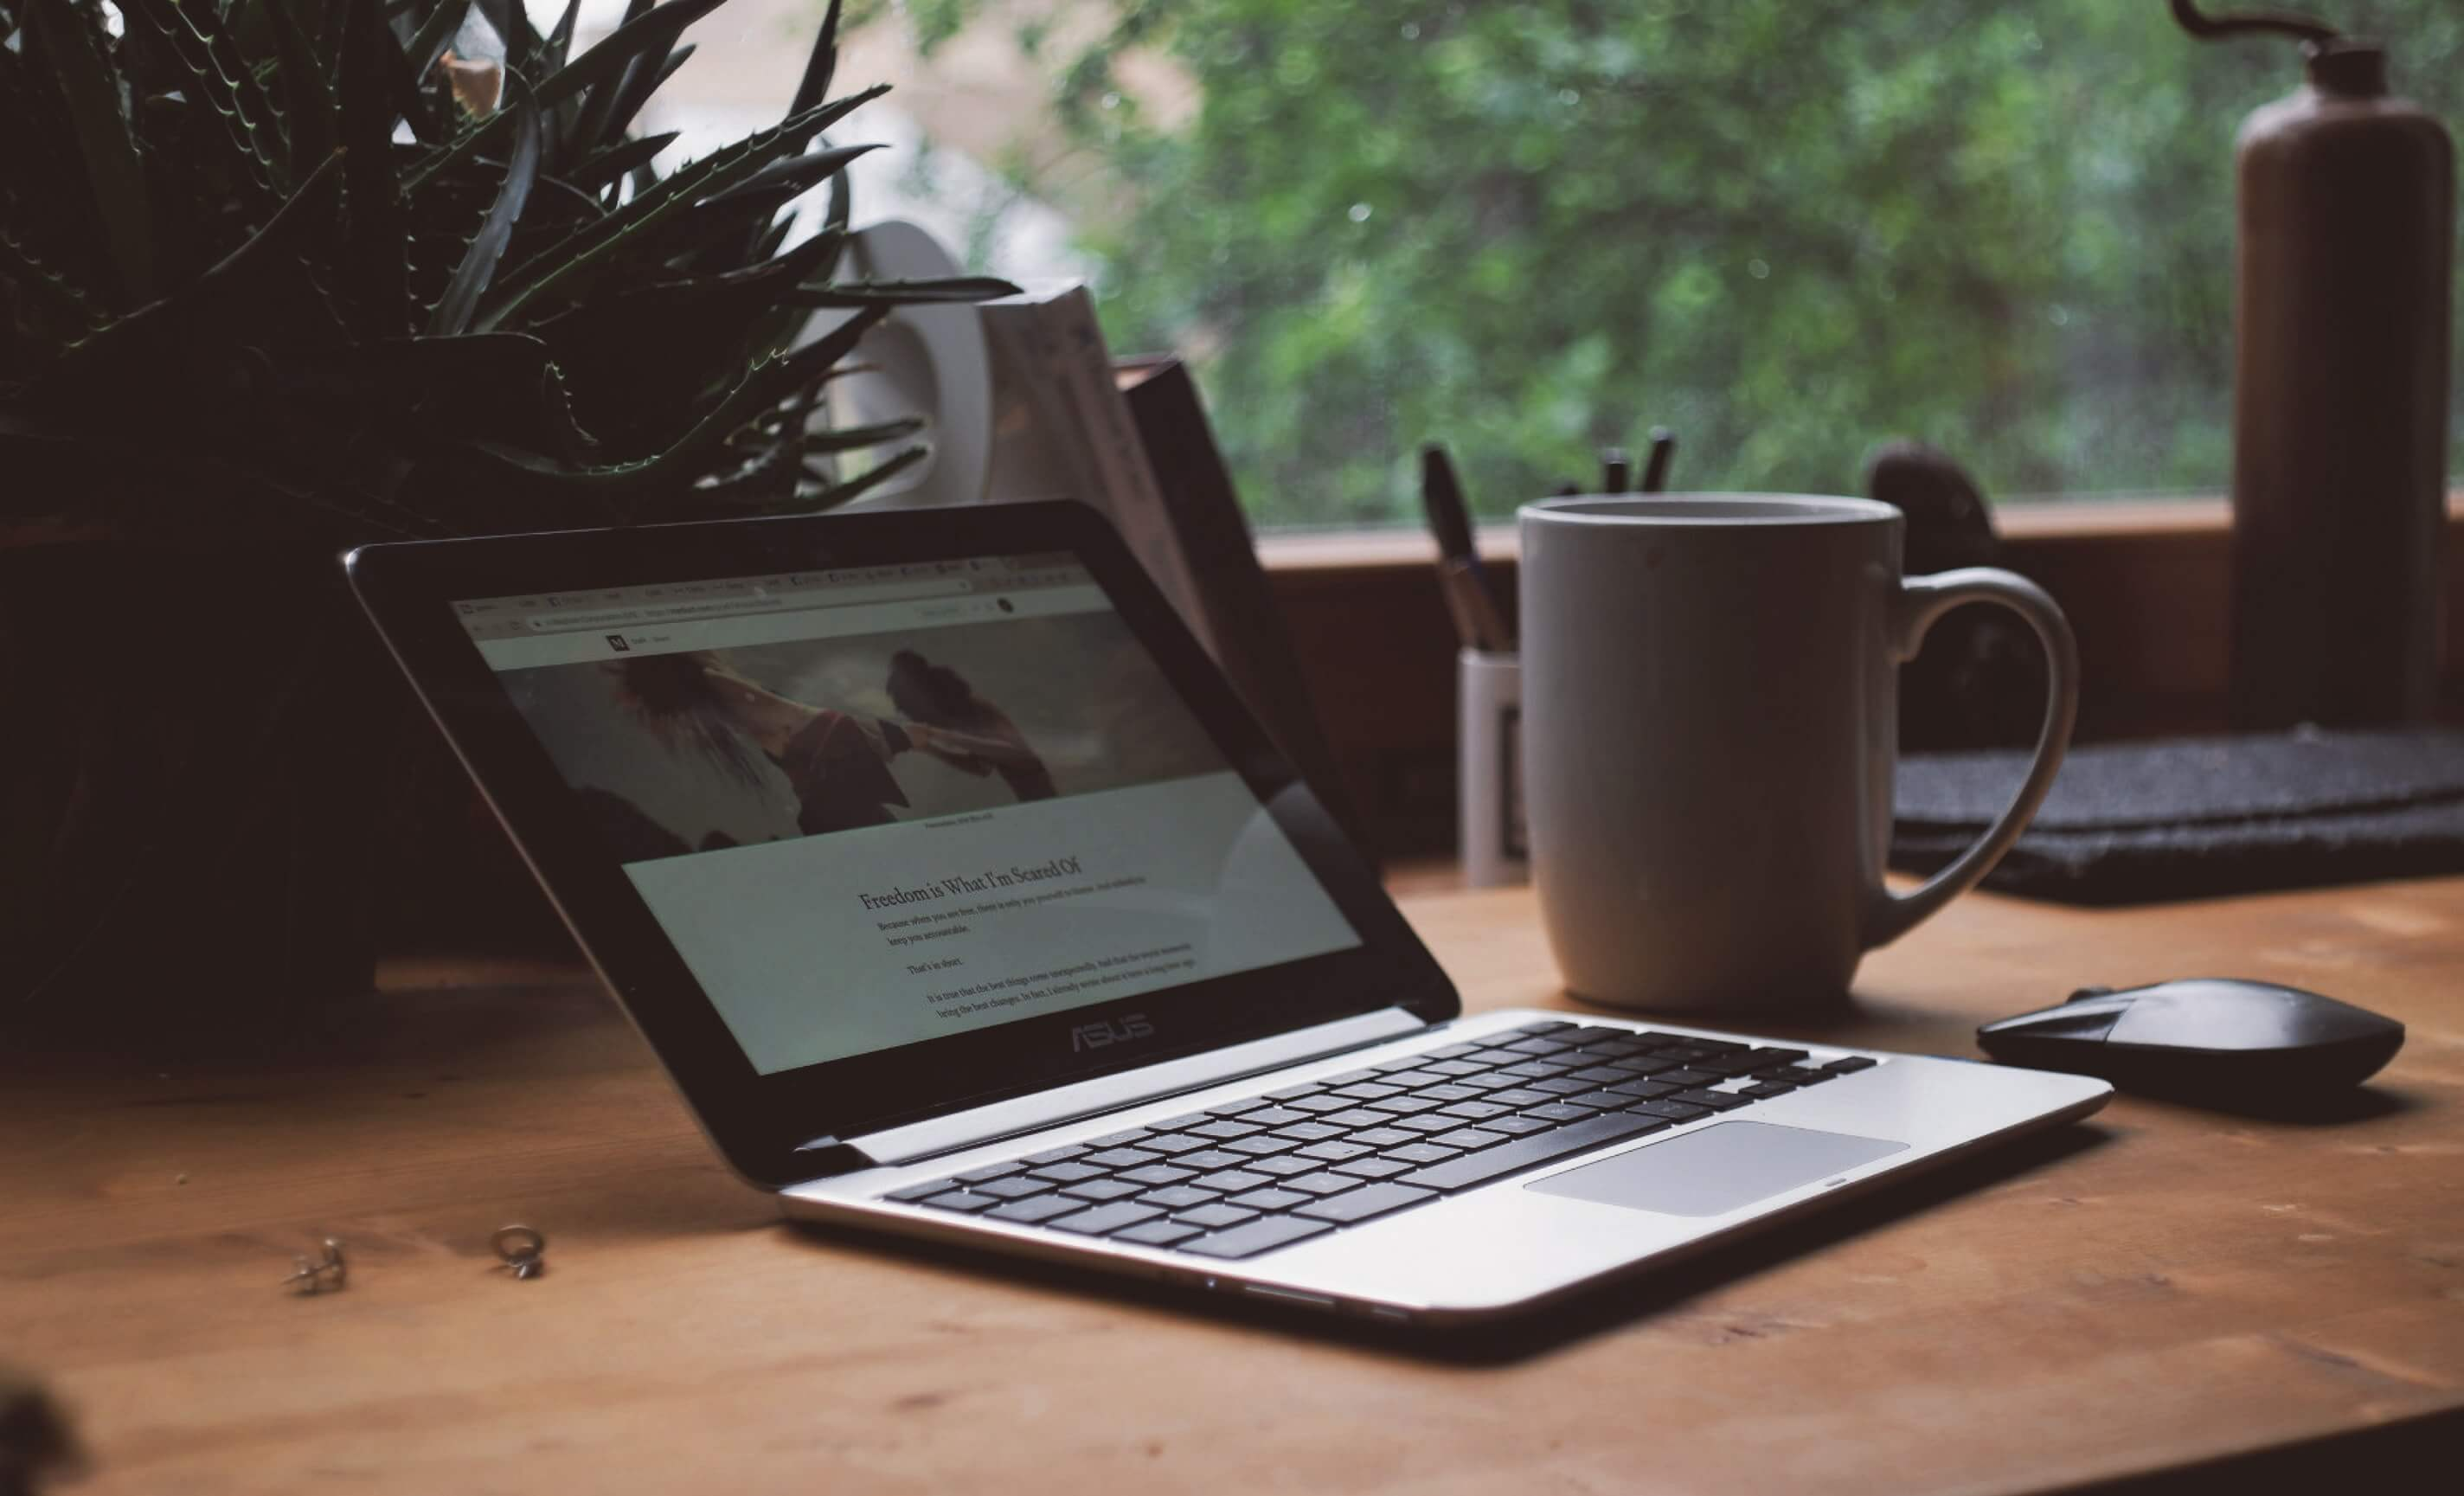 10 Ways How to Stay on Tasks When Working from Home